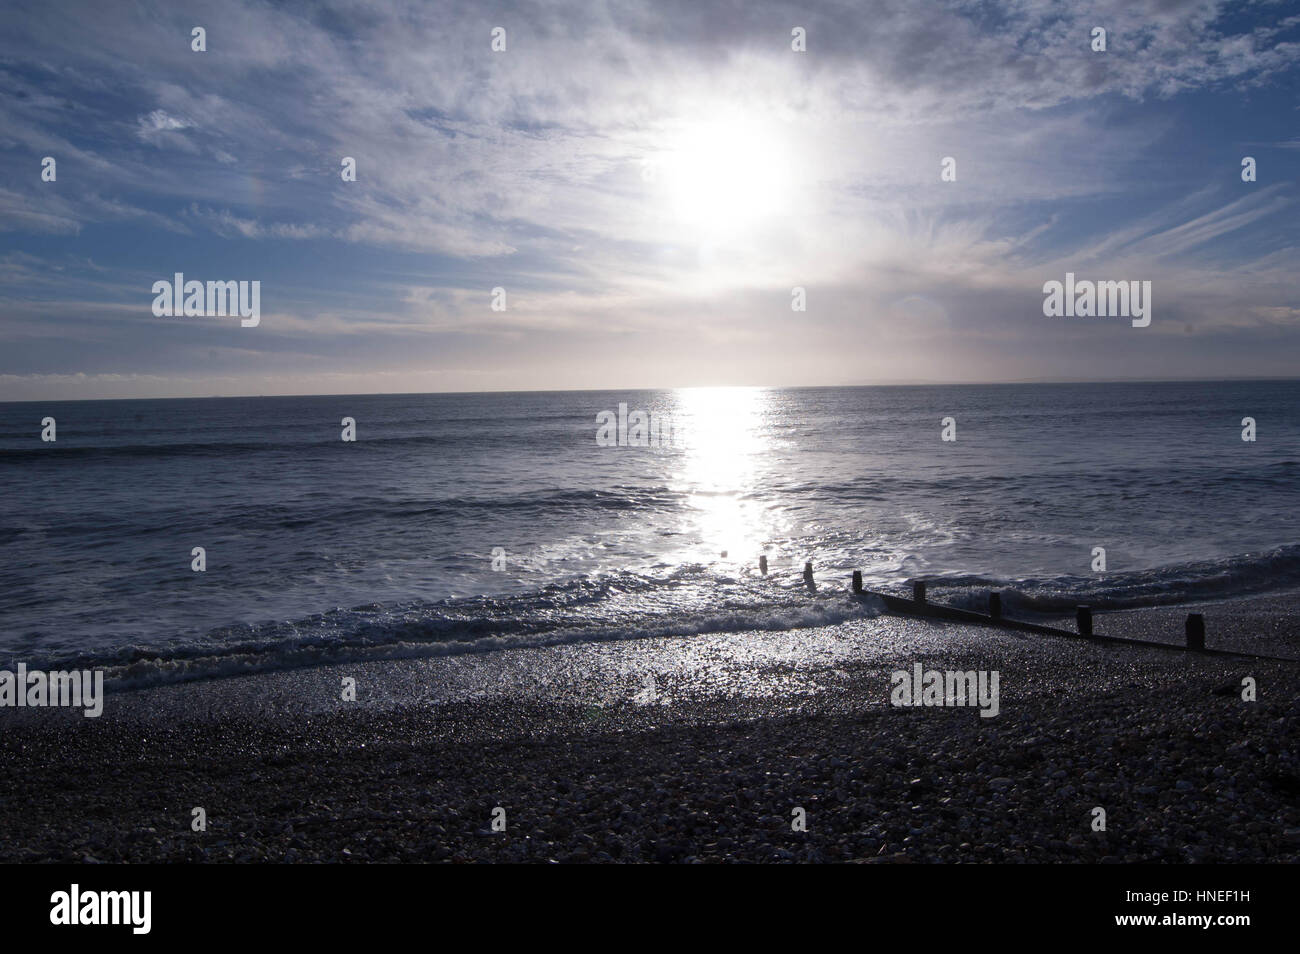 Seascape of sun casting a reflection over a dark-blue sea, with a blue sky above partially covered by wispy clouds - Stock Image